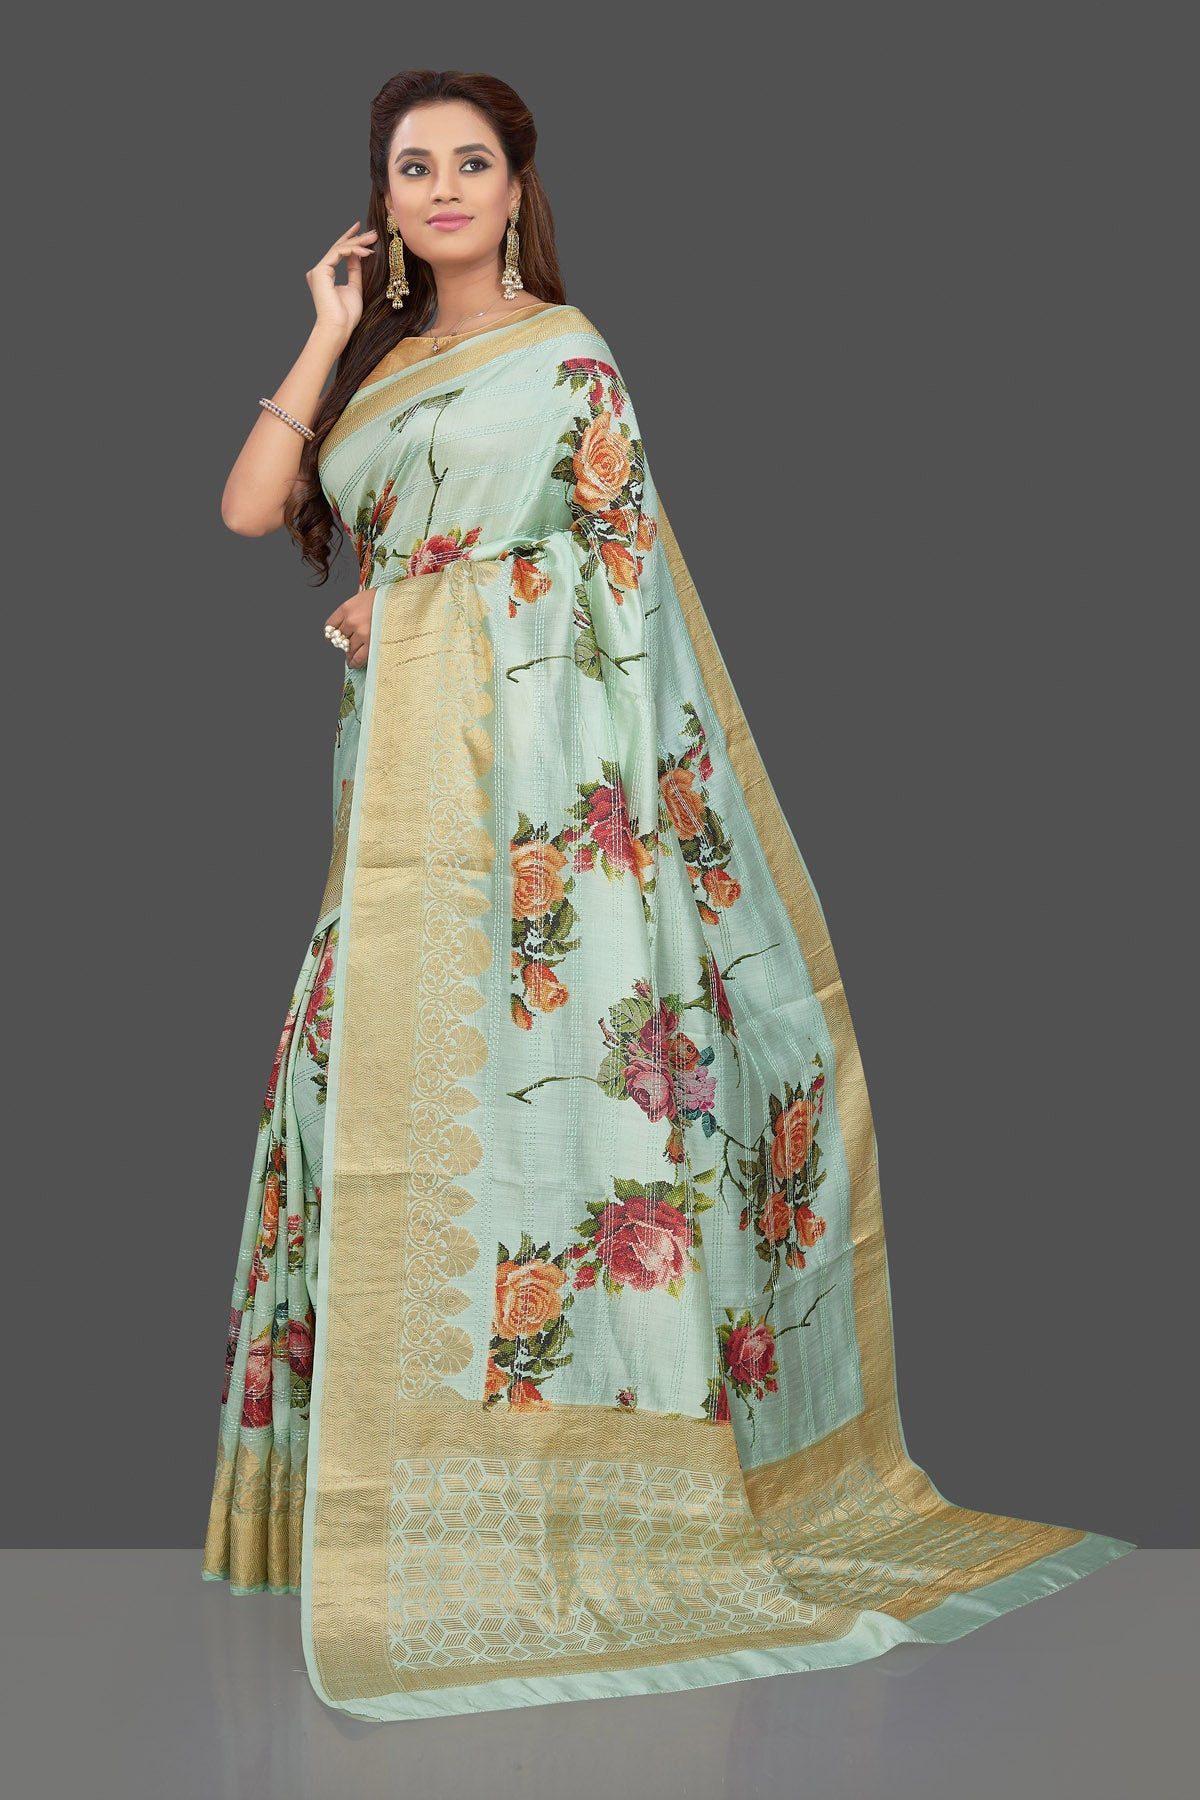 Buy beautiful mint green floral print muga silk saree online in USA with golden zari border. Make you presence felt with your Indian style on special occasions in beautiful designer sarees, handwoven sarees, tussar sarees, muga silk sarees from Pure Elegance Indian fashion store in USA.-pallu